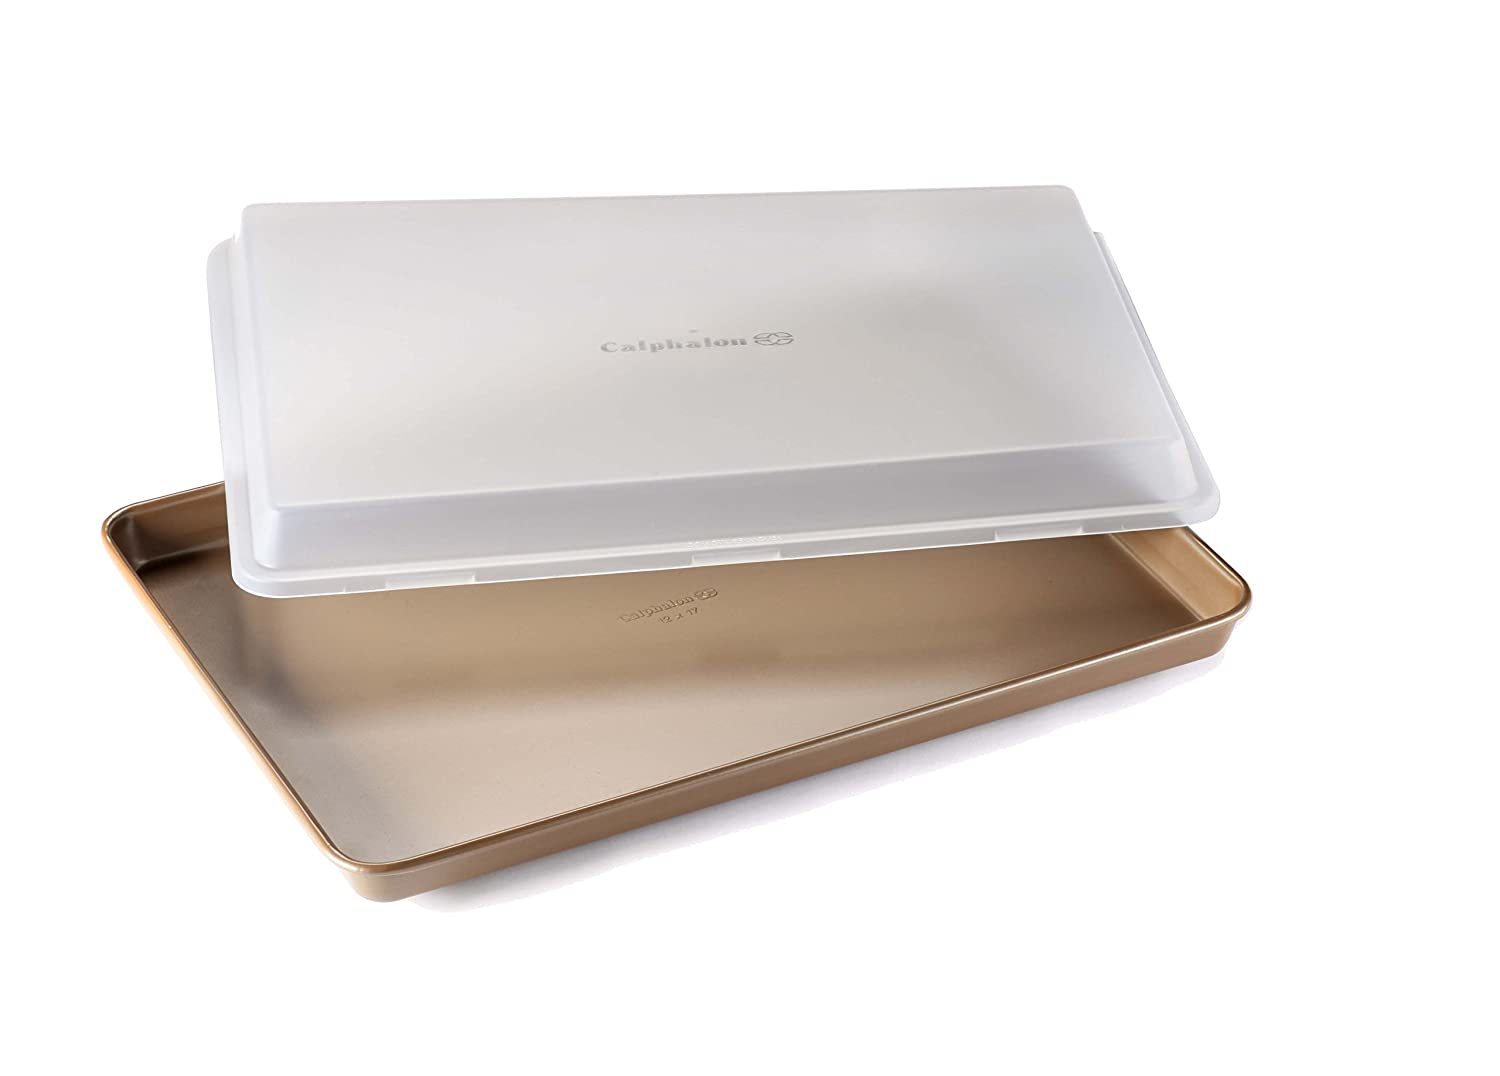 "Calphalon Nonstick Bakeware Baking Sheet with Cover, 12"" by 17"", Toffee"